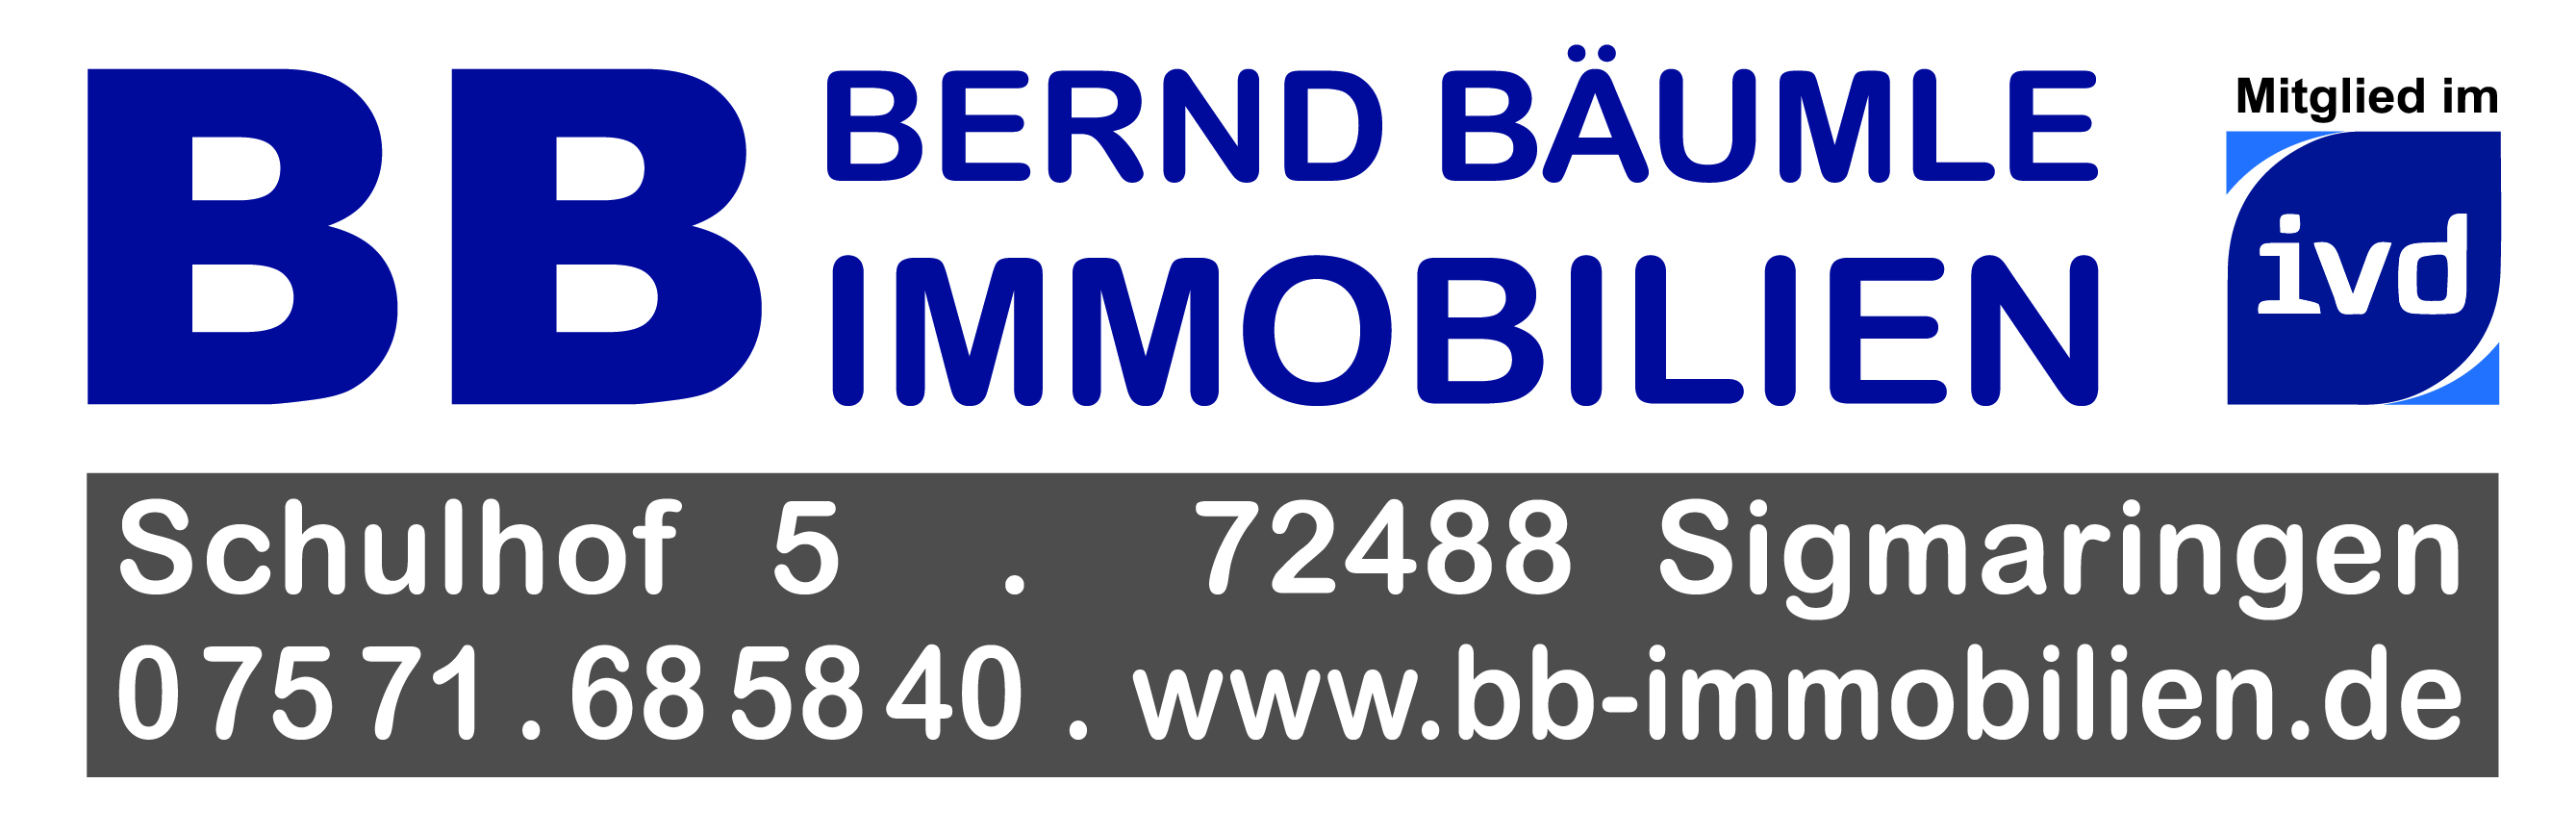 BB-Immobilien